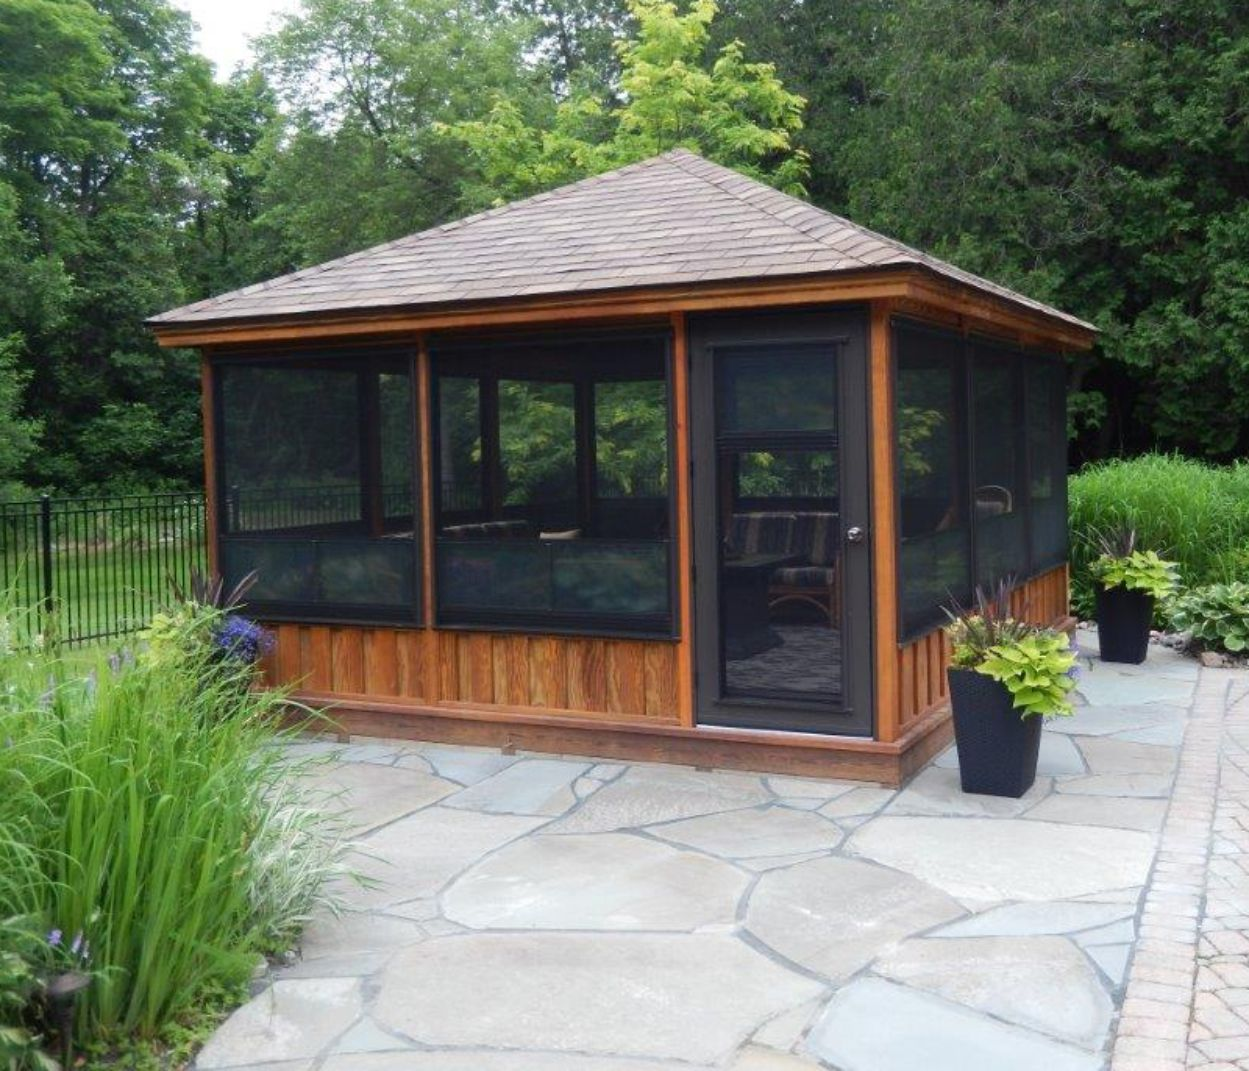 Screened Gazebo Kits Decorative Gazebo Plans Backyard Gazebo